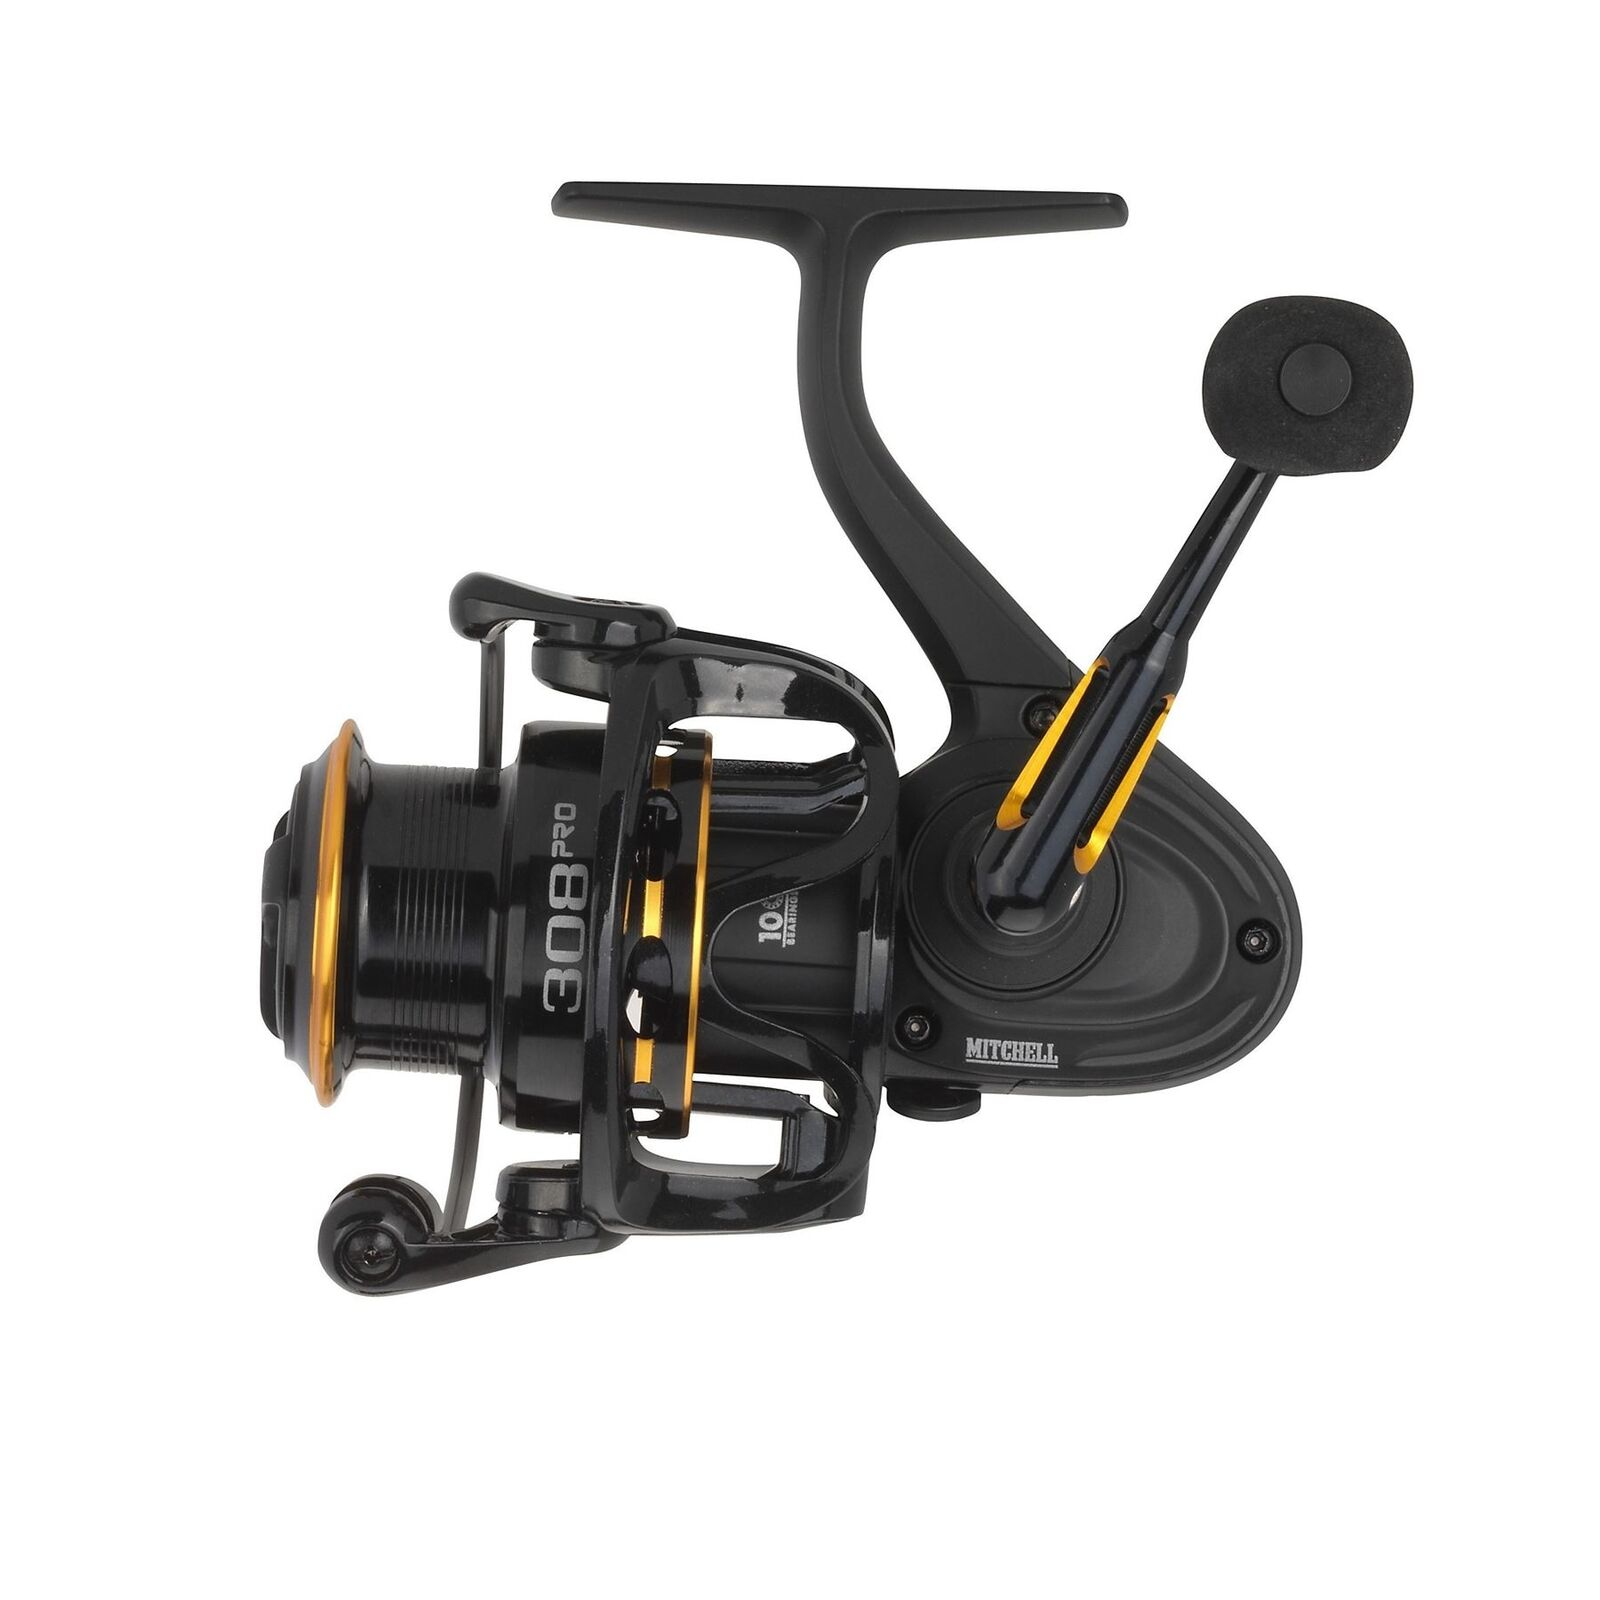 Mitchell 308  Pro   2000   Fixed Spool Fishing Reel  authentic